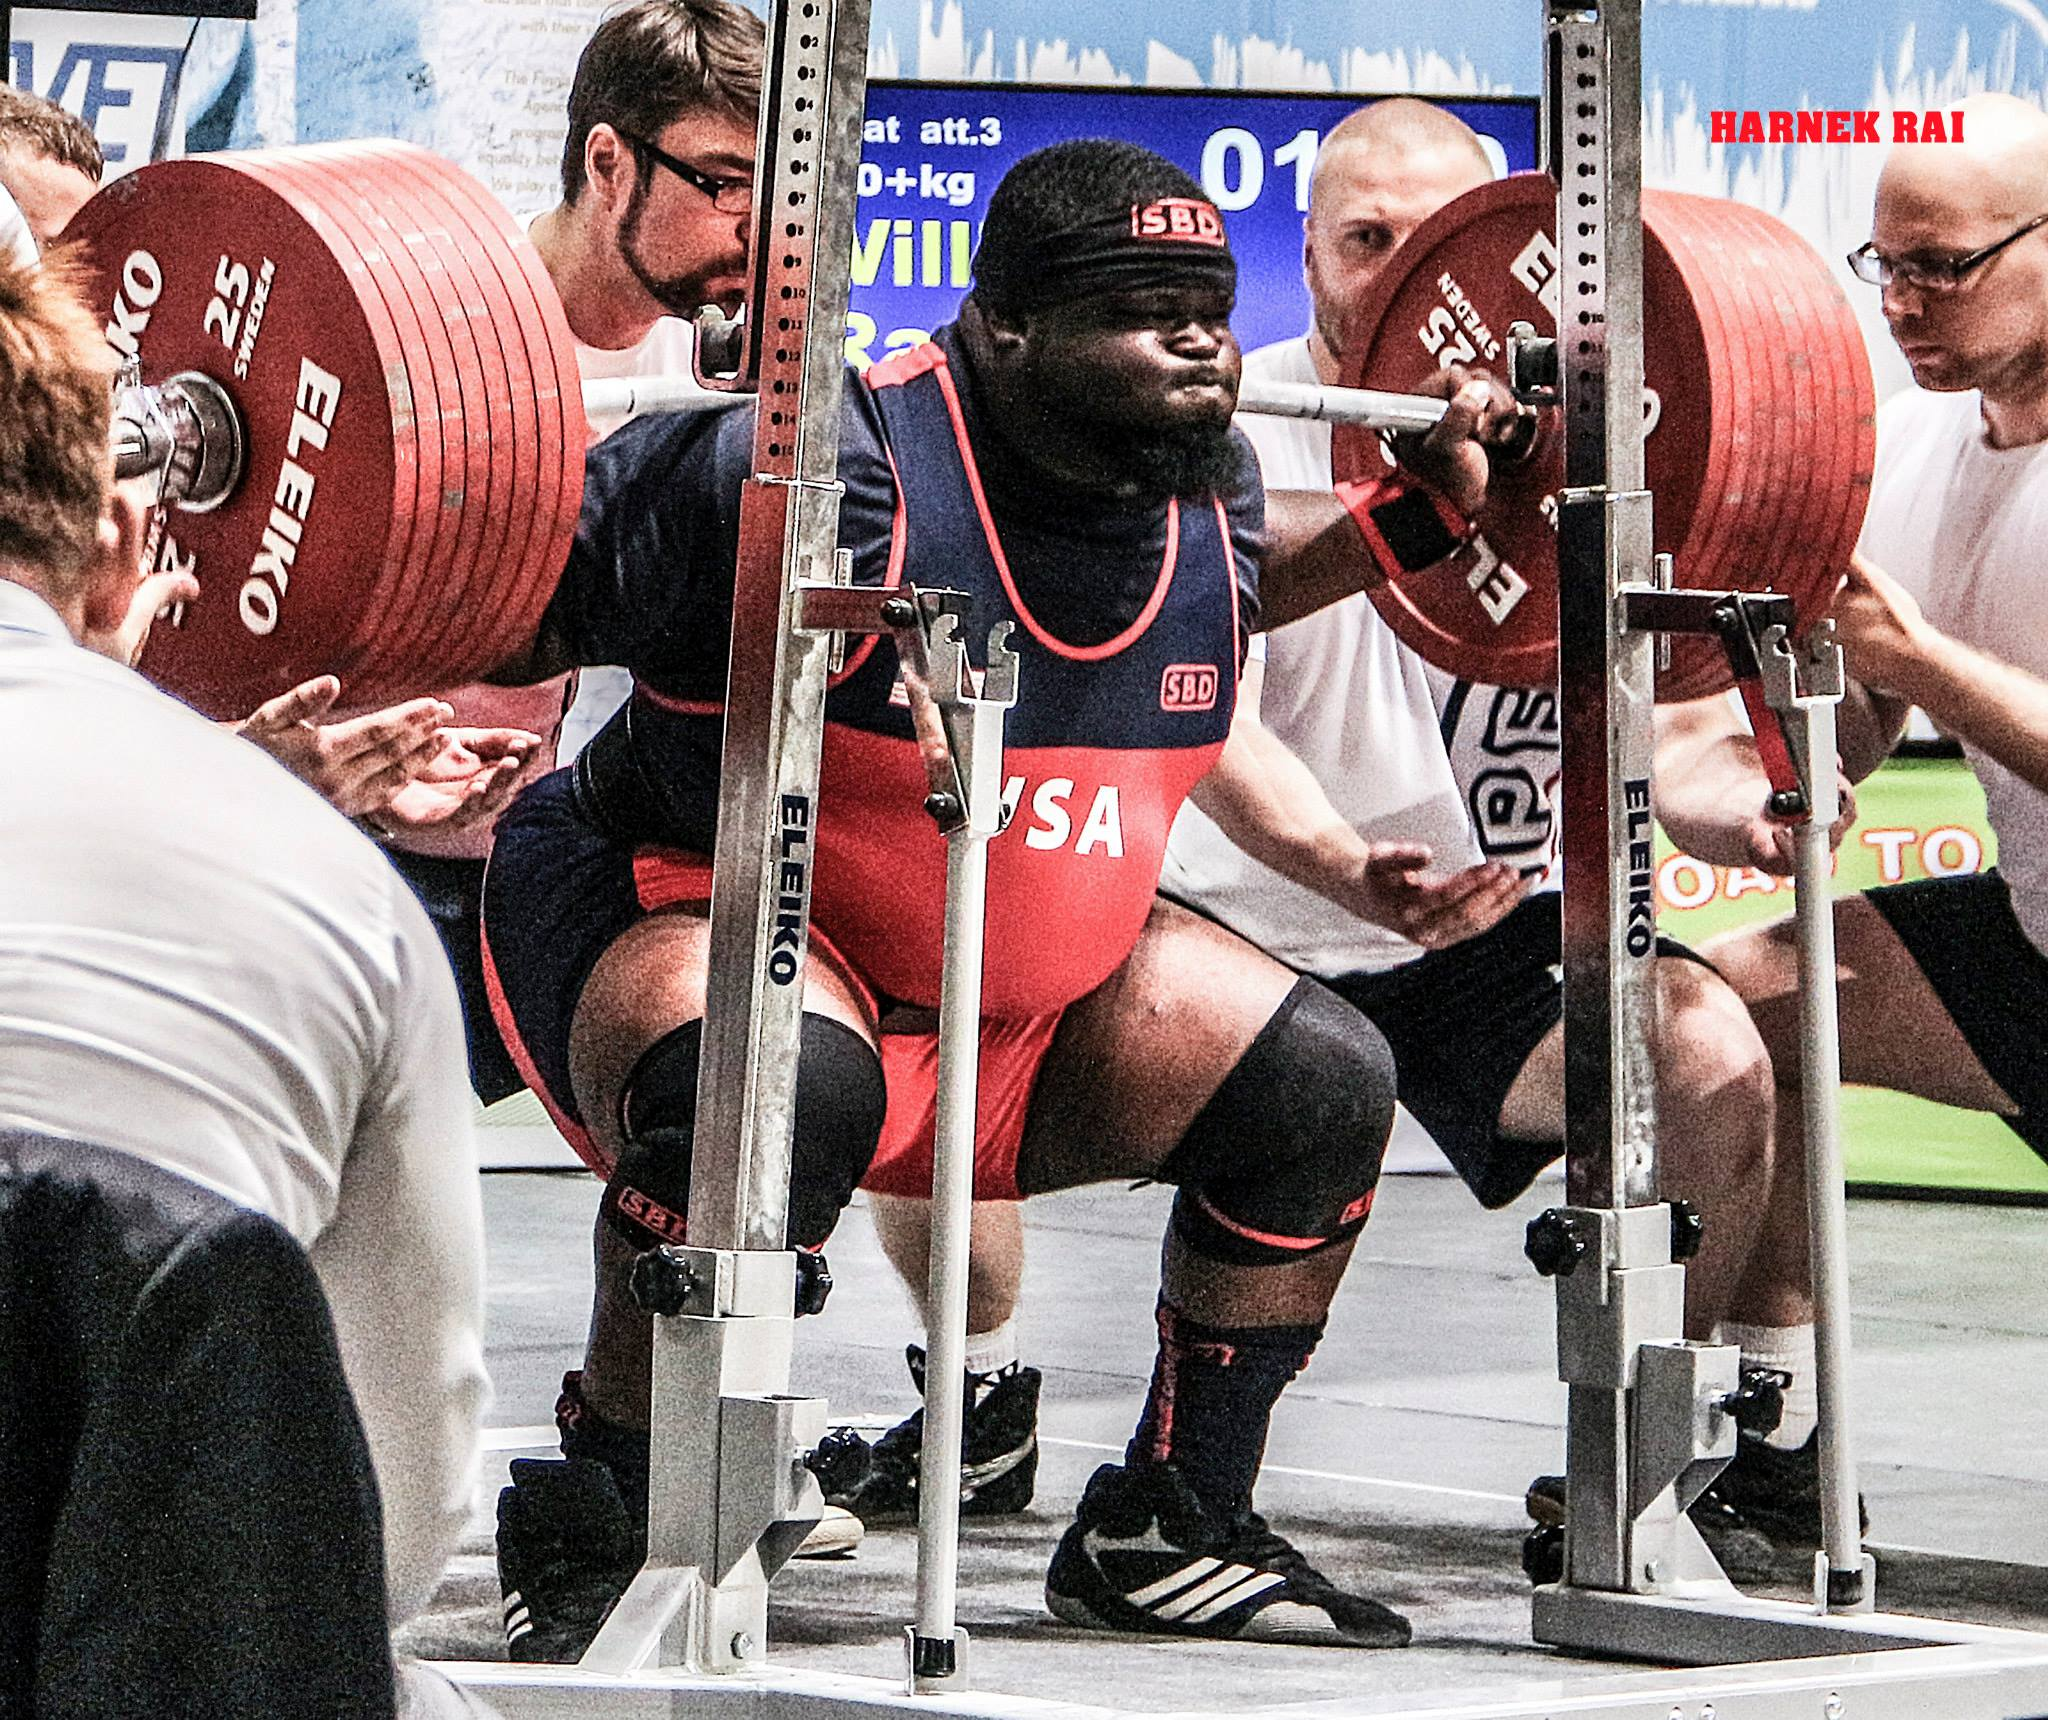 Mississippi Barbell athlete Ray Williams breaking the world squat record in 2015 with 425.5/938. Photo credit: Harnek Rai